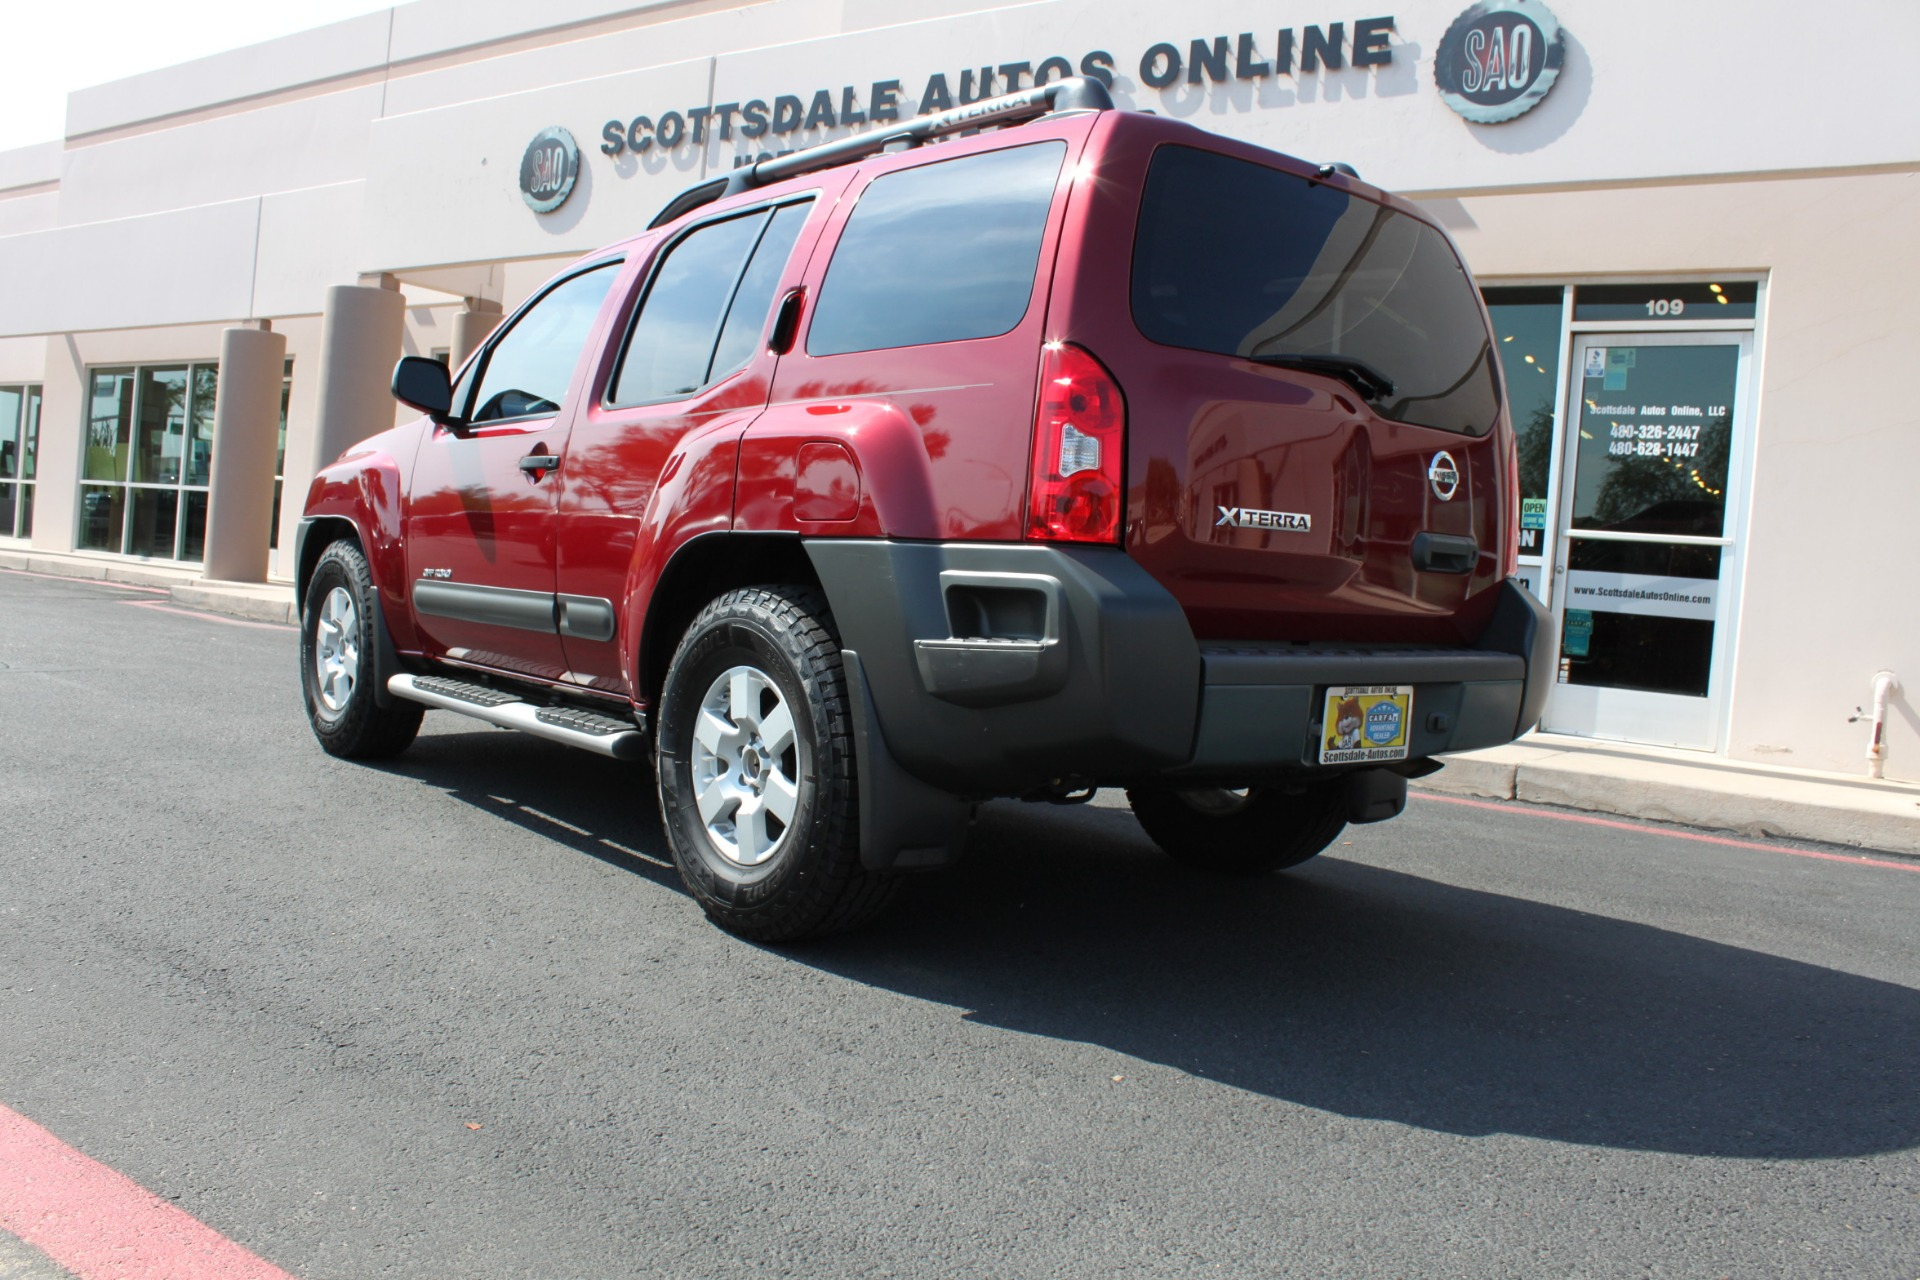 Used-2006-Nissan-Xterra-Off-Road-Dodge